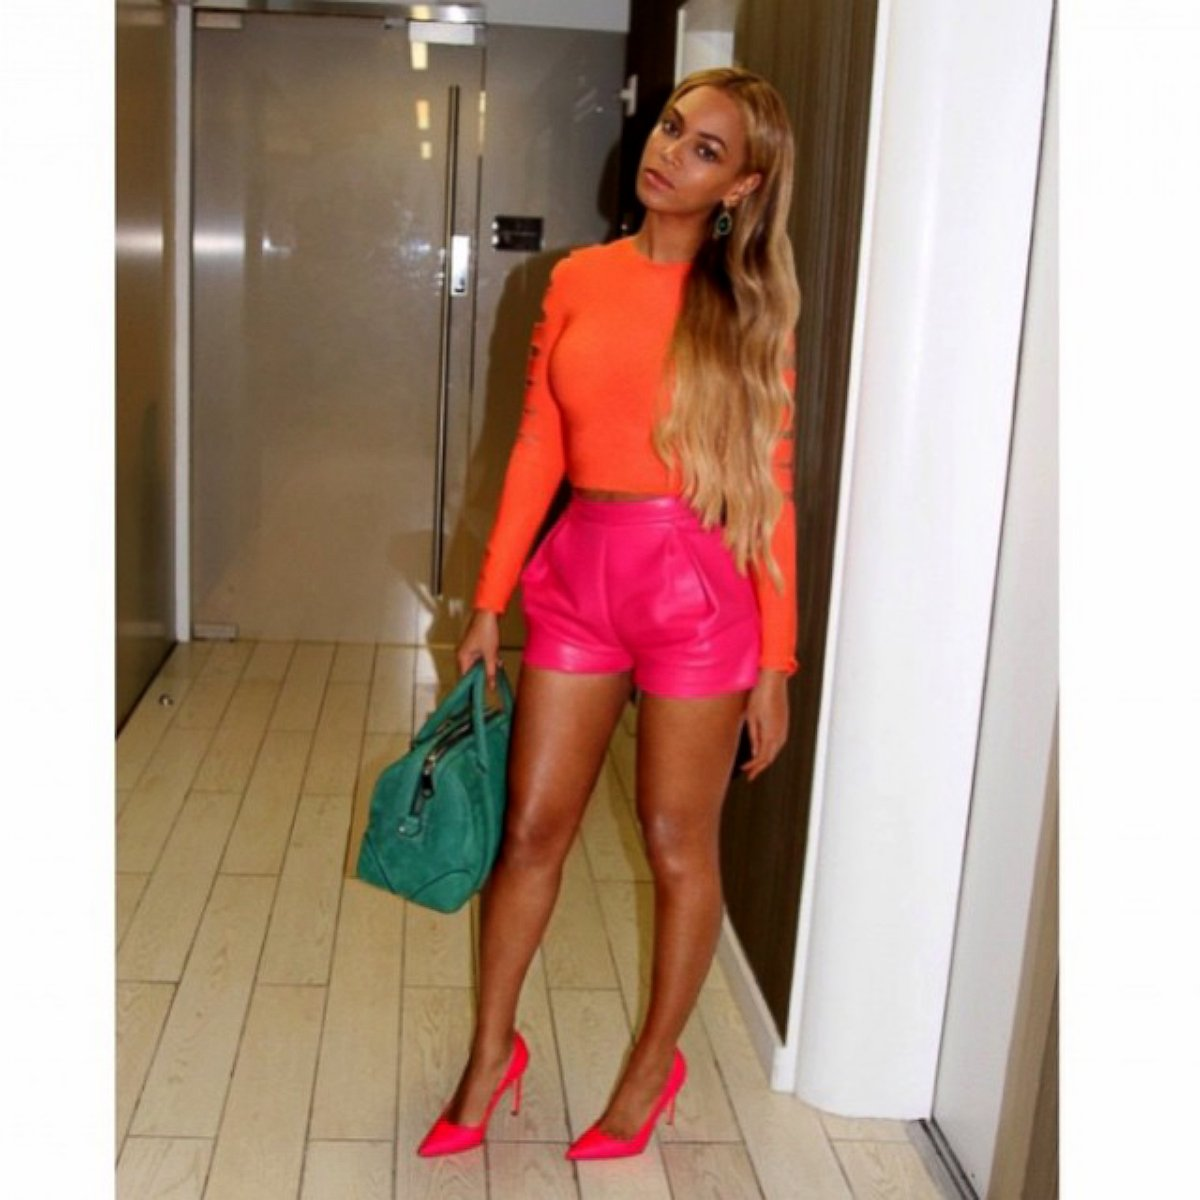 Beyonce Stuns in a Bright, Two-Toned Outfit